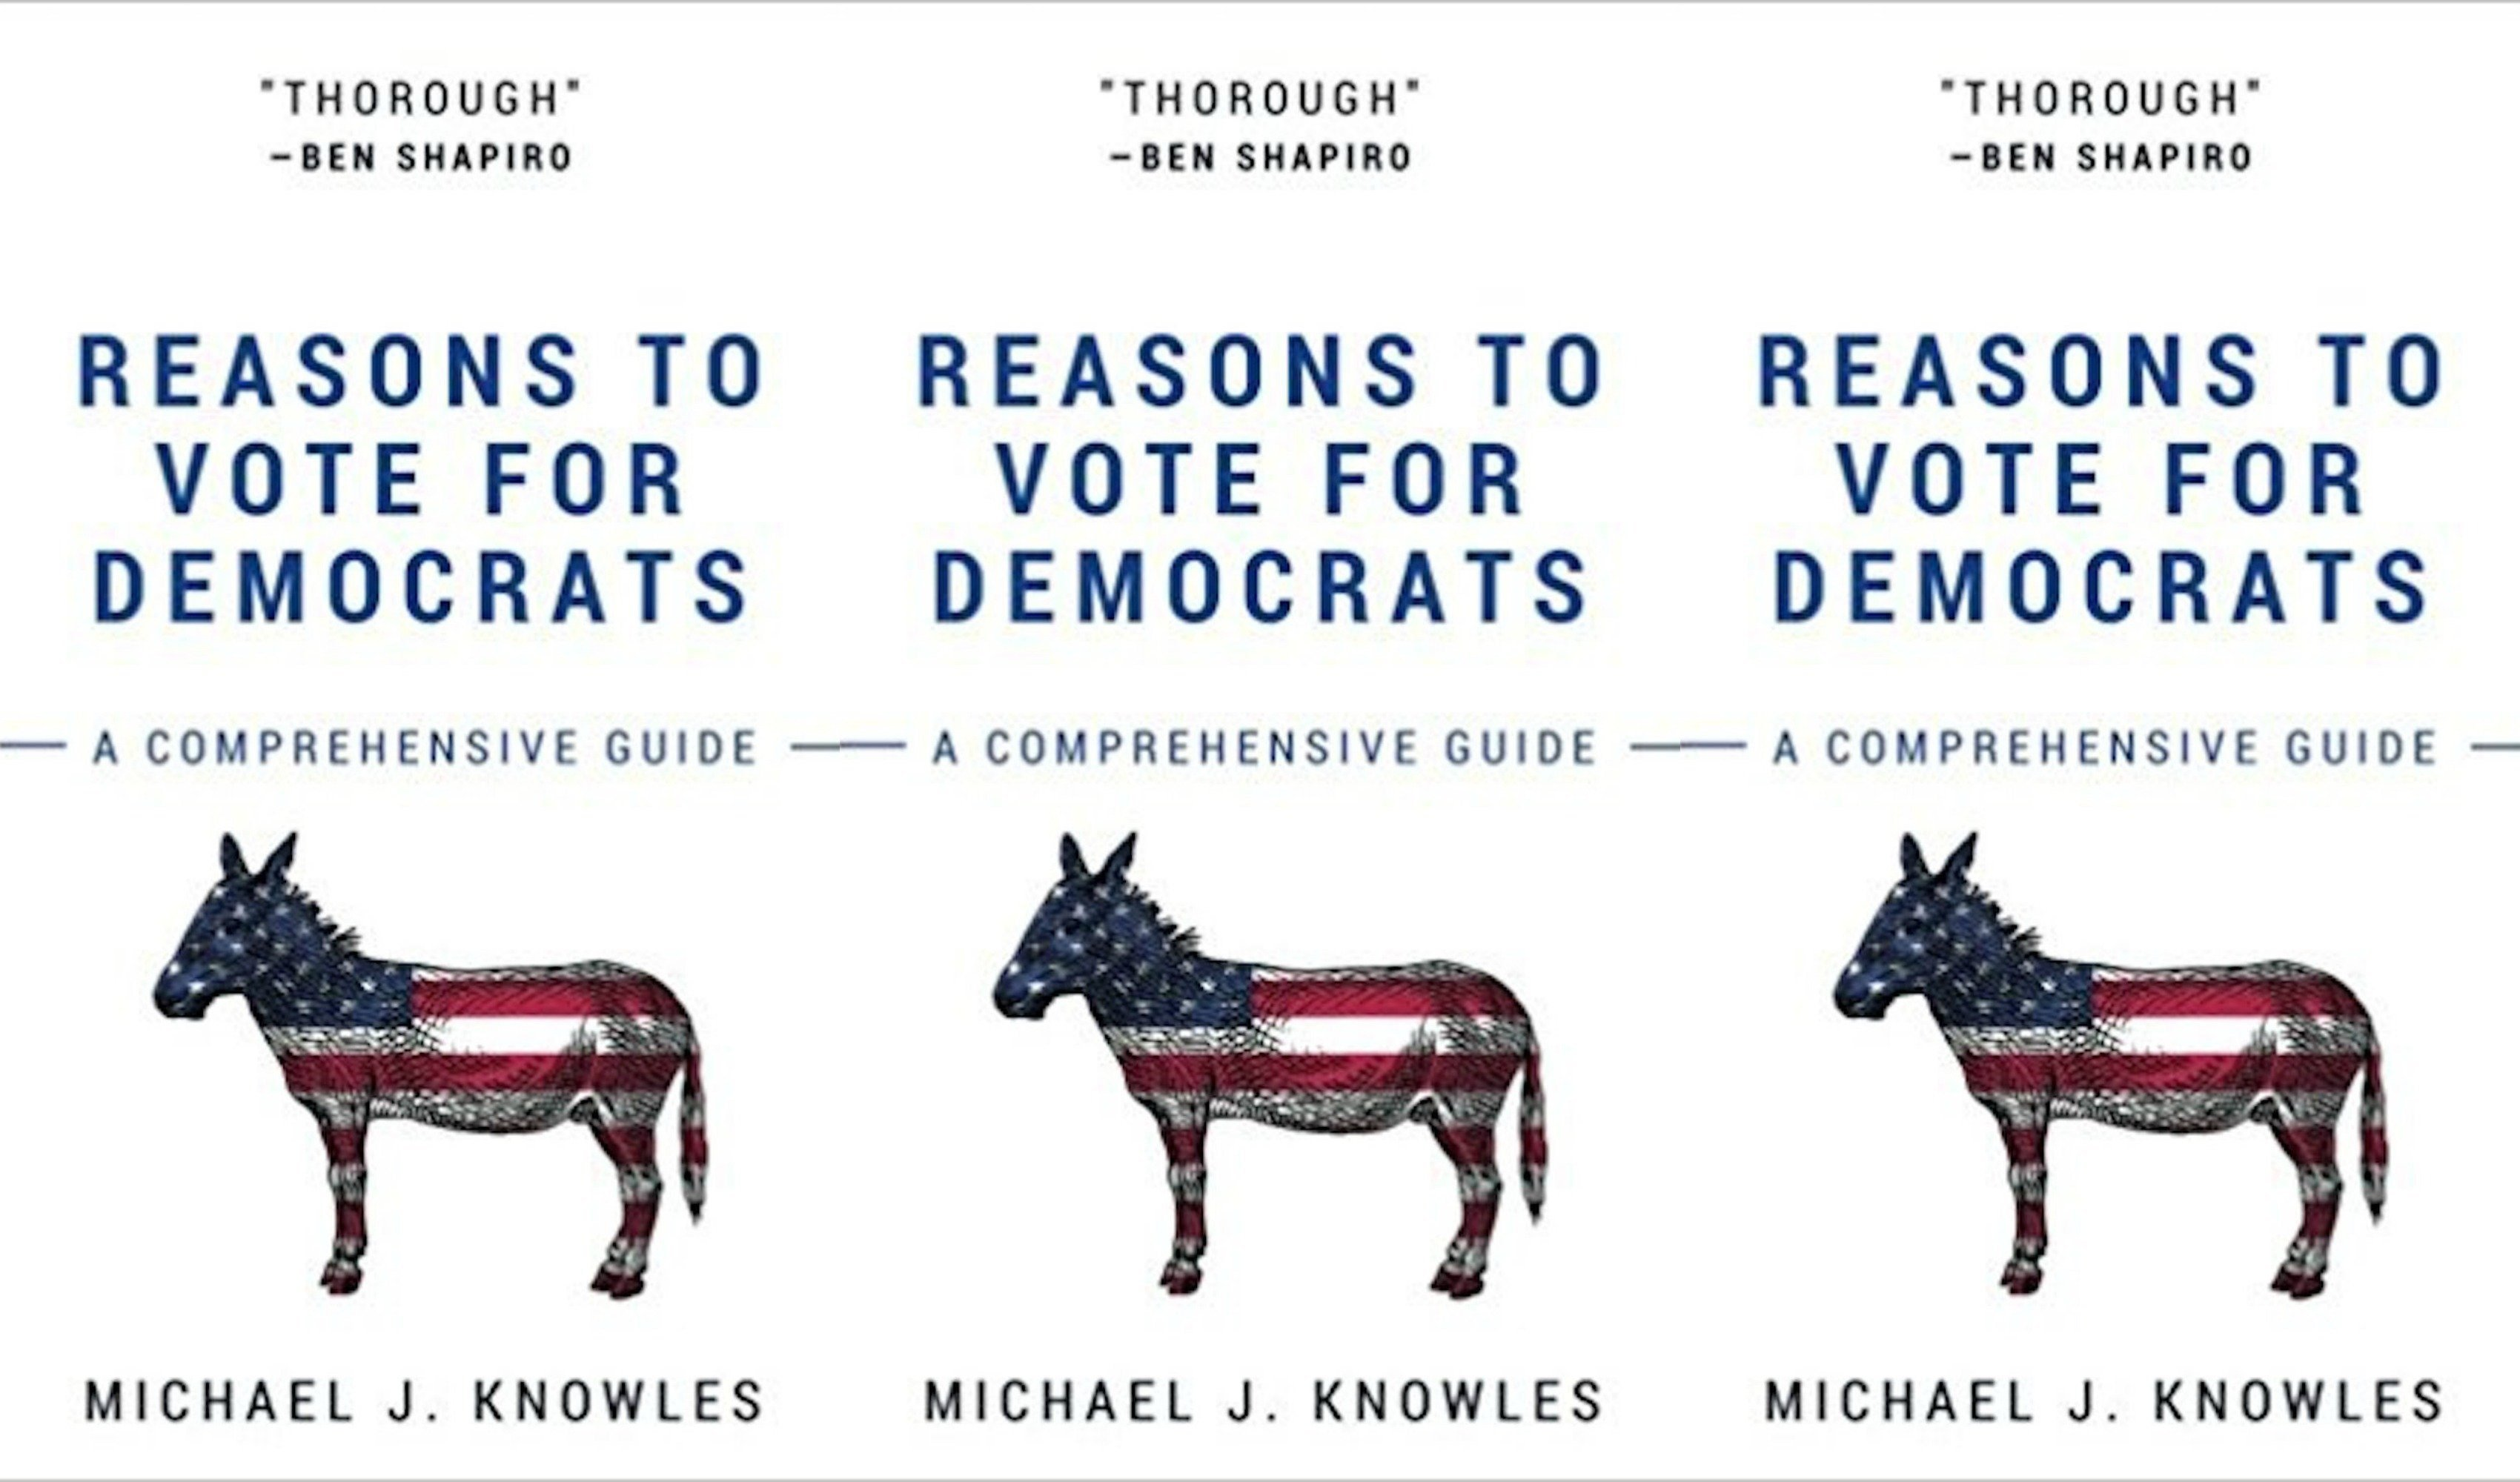 Blank Book on 'Reasons to Vote for Democrats' Becomes Amazon Best-Seller